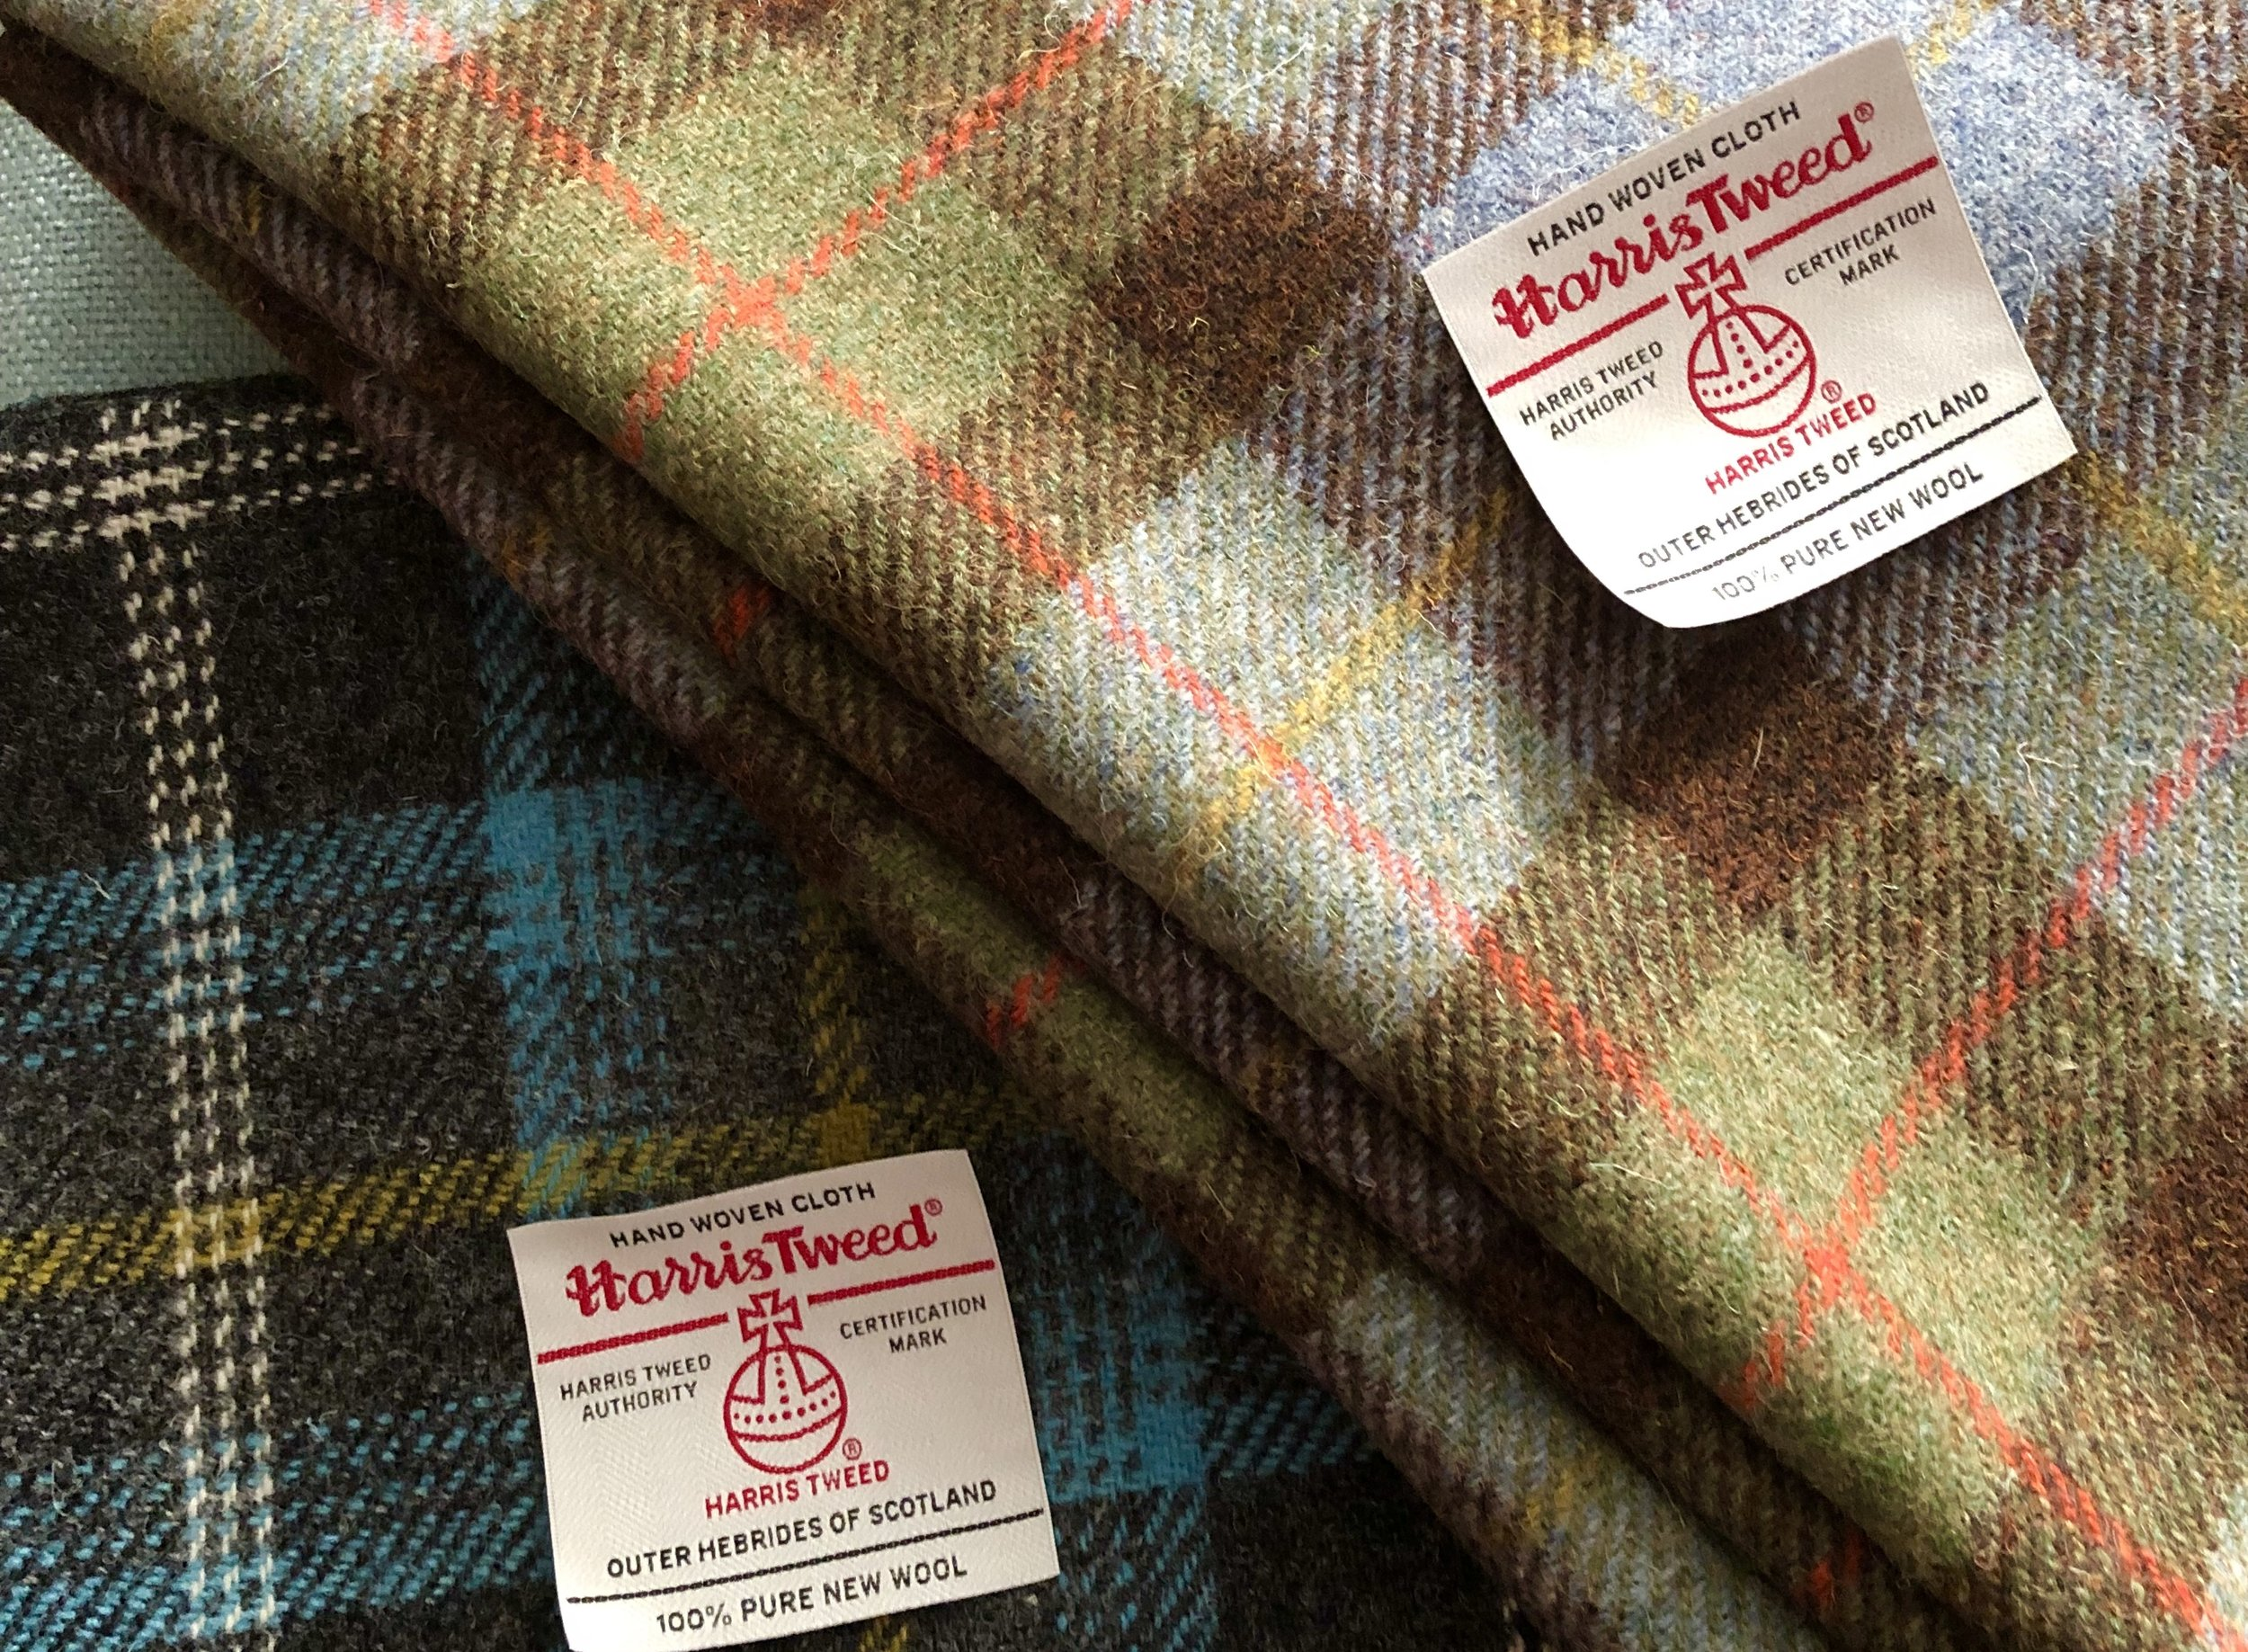 Harris Tweed - official!